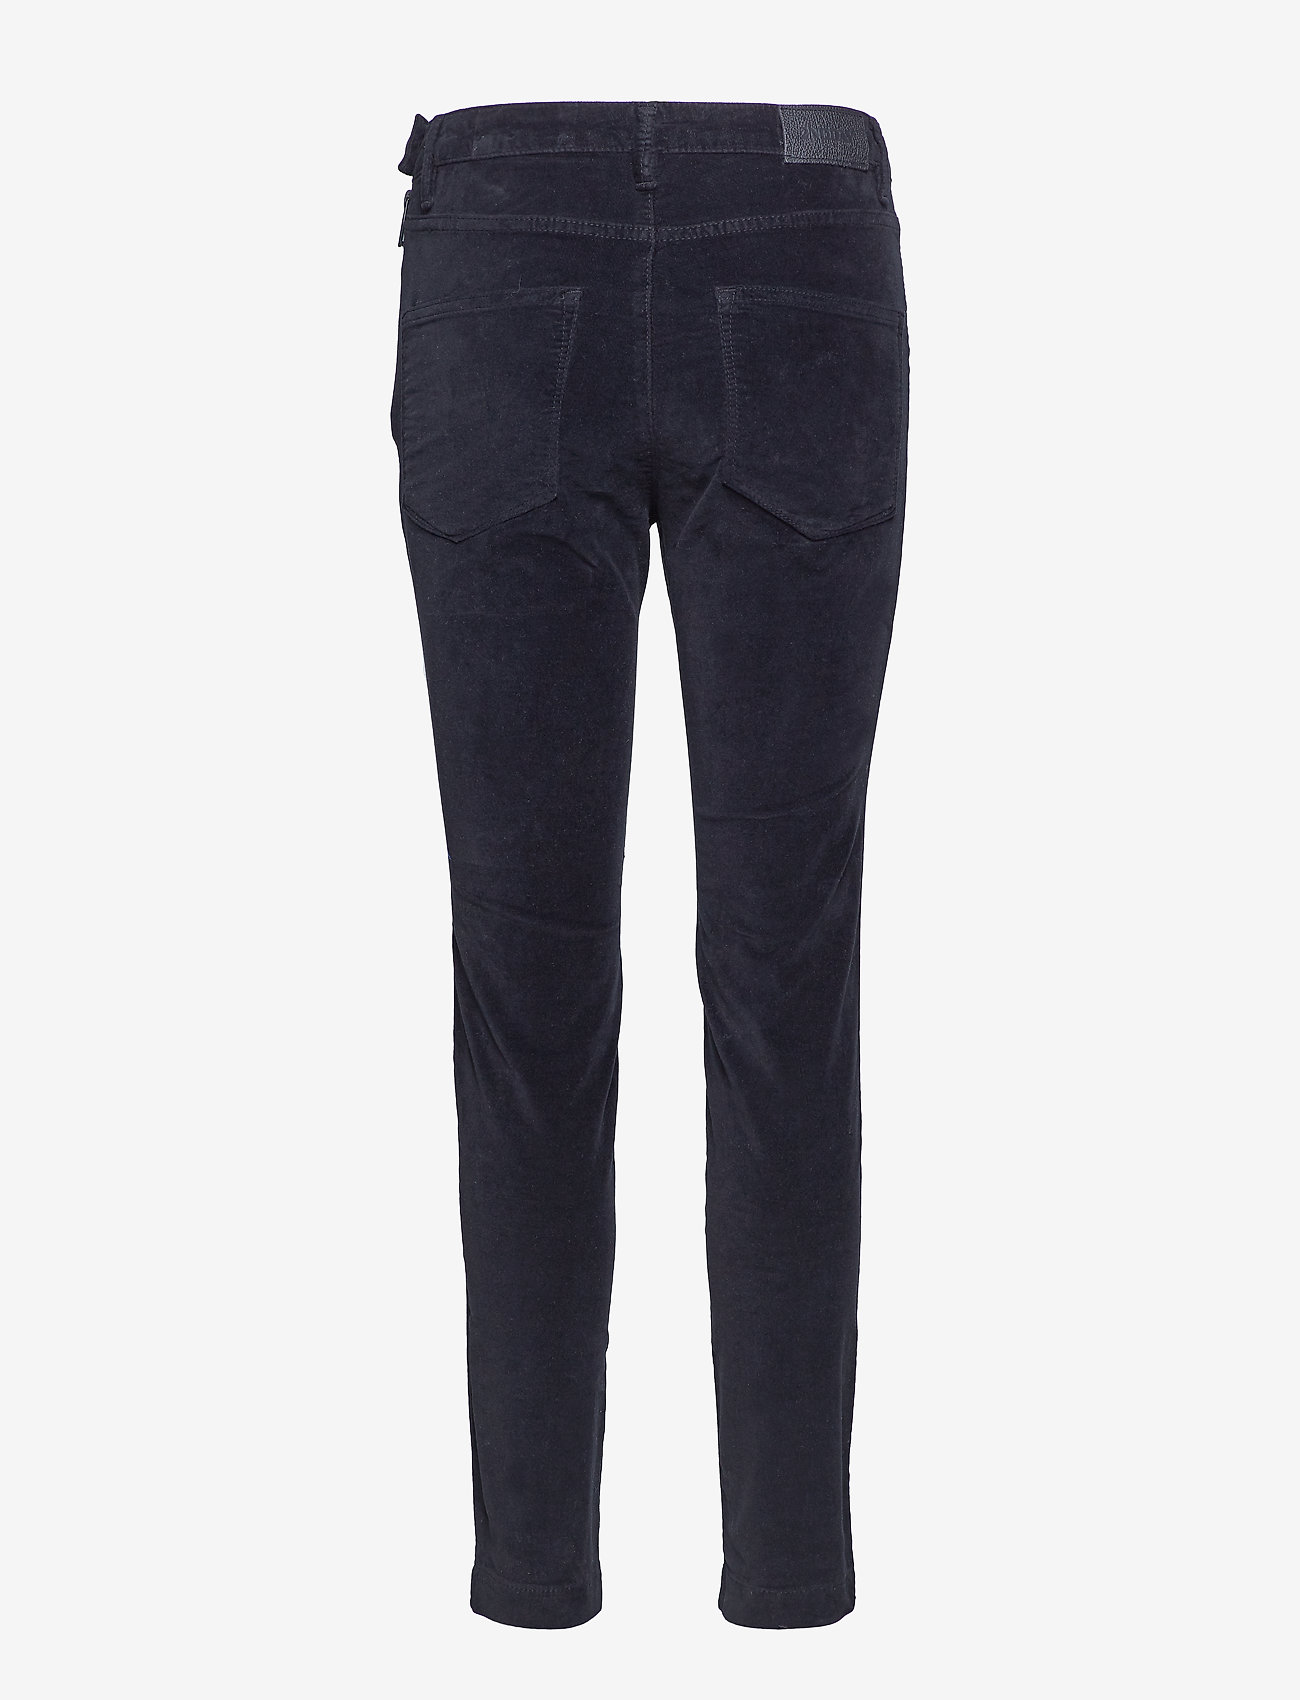 2NDDAY - 2ND Jeanett Velvet - straight leg trousers - black - 1